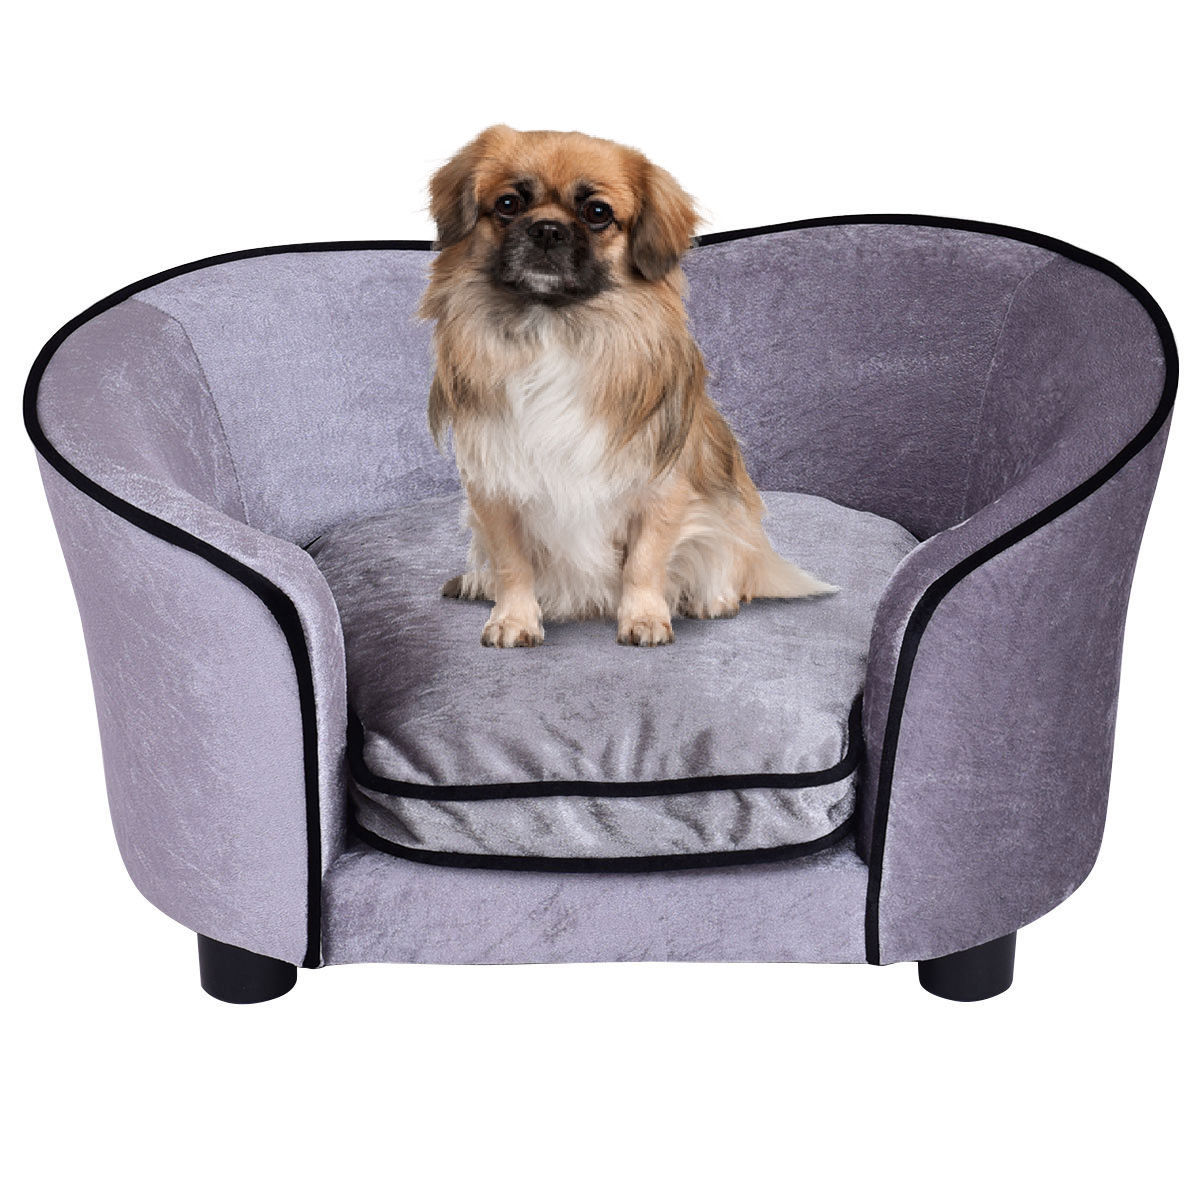 Costway Pet Lounge Sofa Dog Puppy Bed Soft Warm Ultra Plush Snuggle Cushion Gray